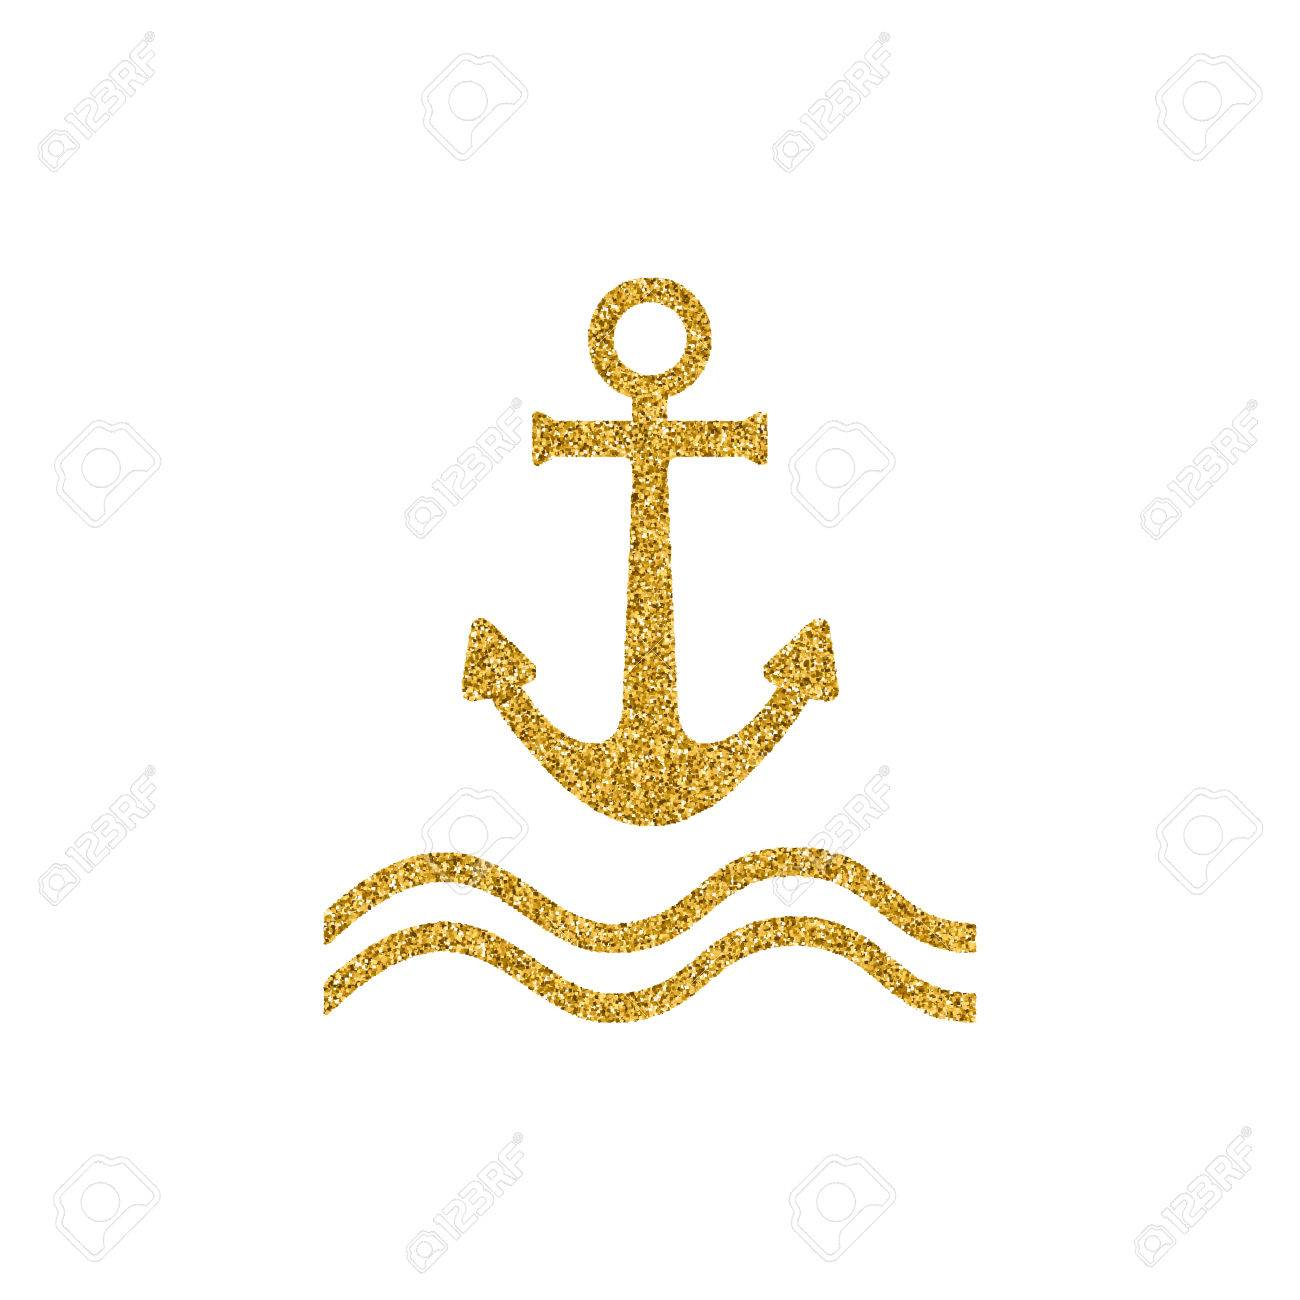 Gold Effekt Anchor Vector Icon Poster Design With Nautical Theme Isolated